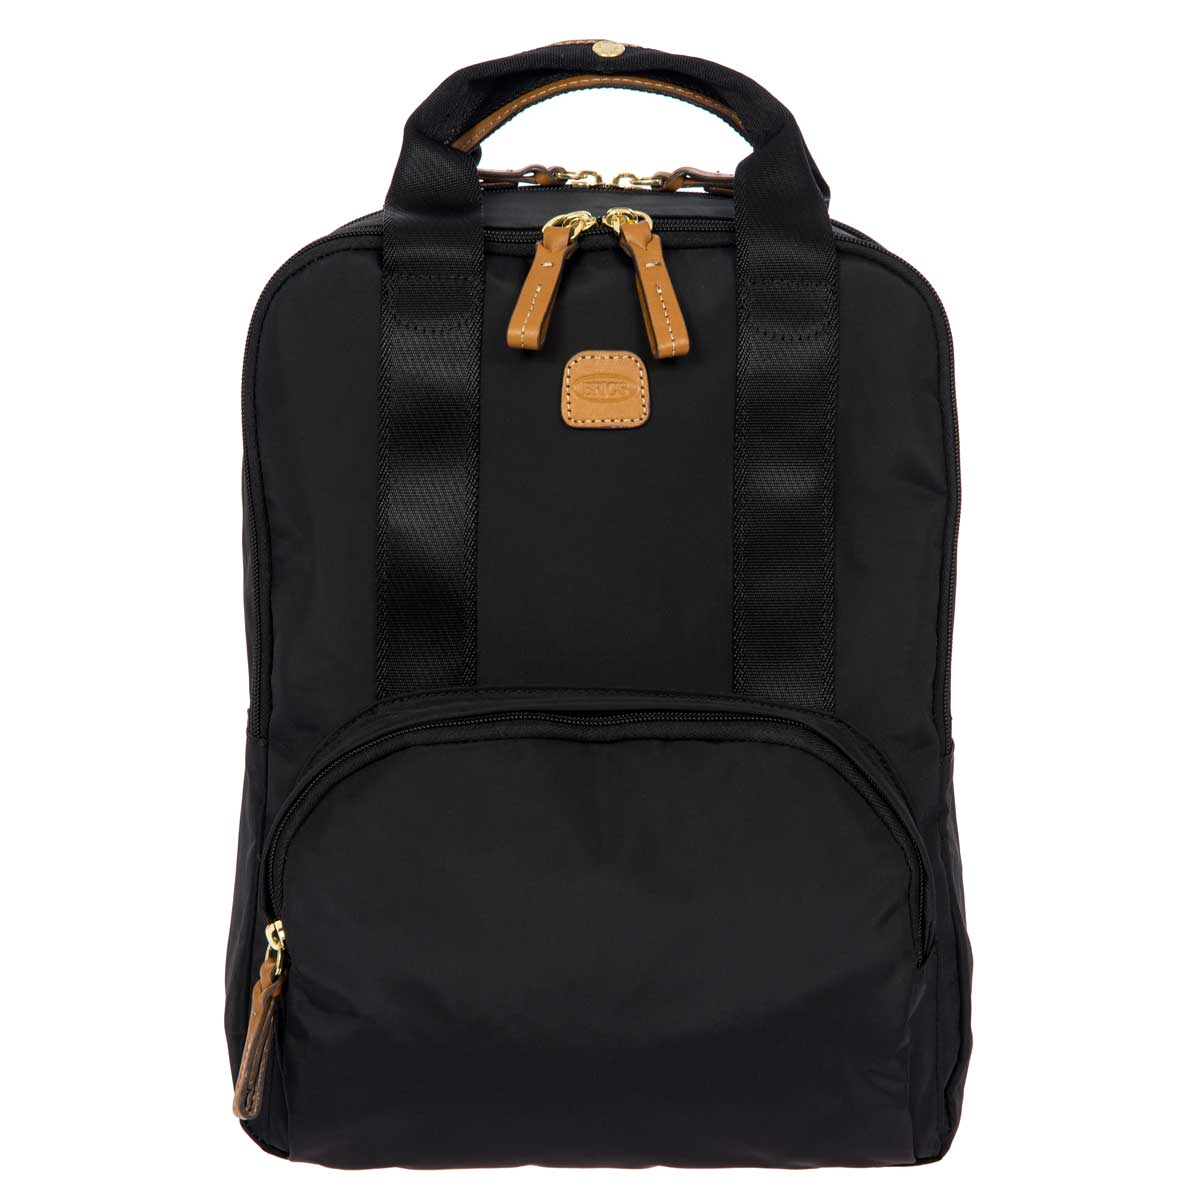 X-Travel Urban Backpack by Brics (Color: Black)